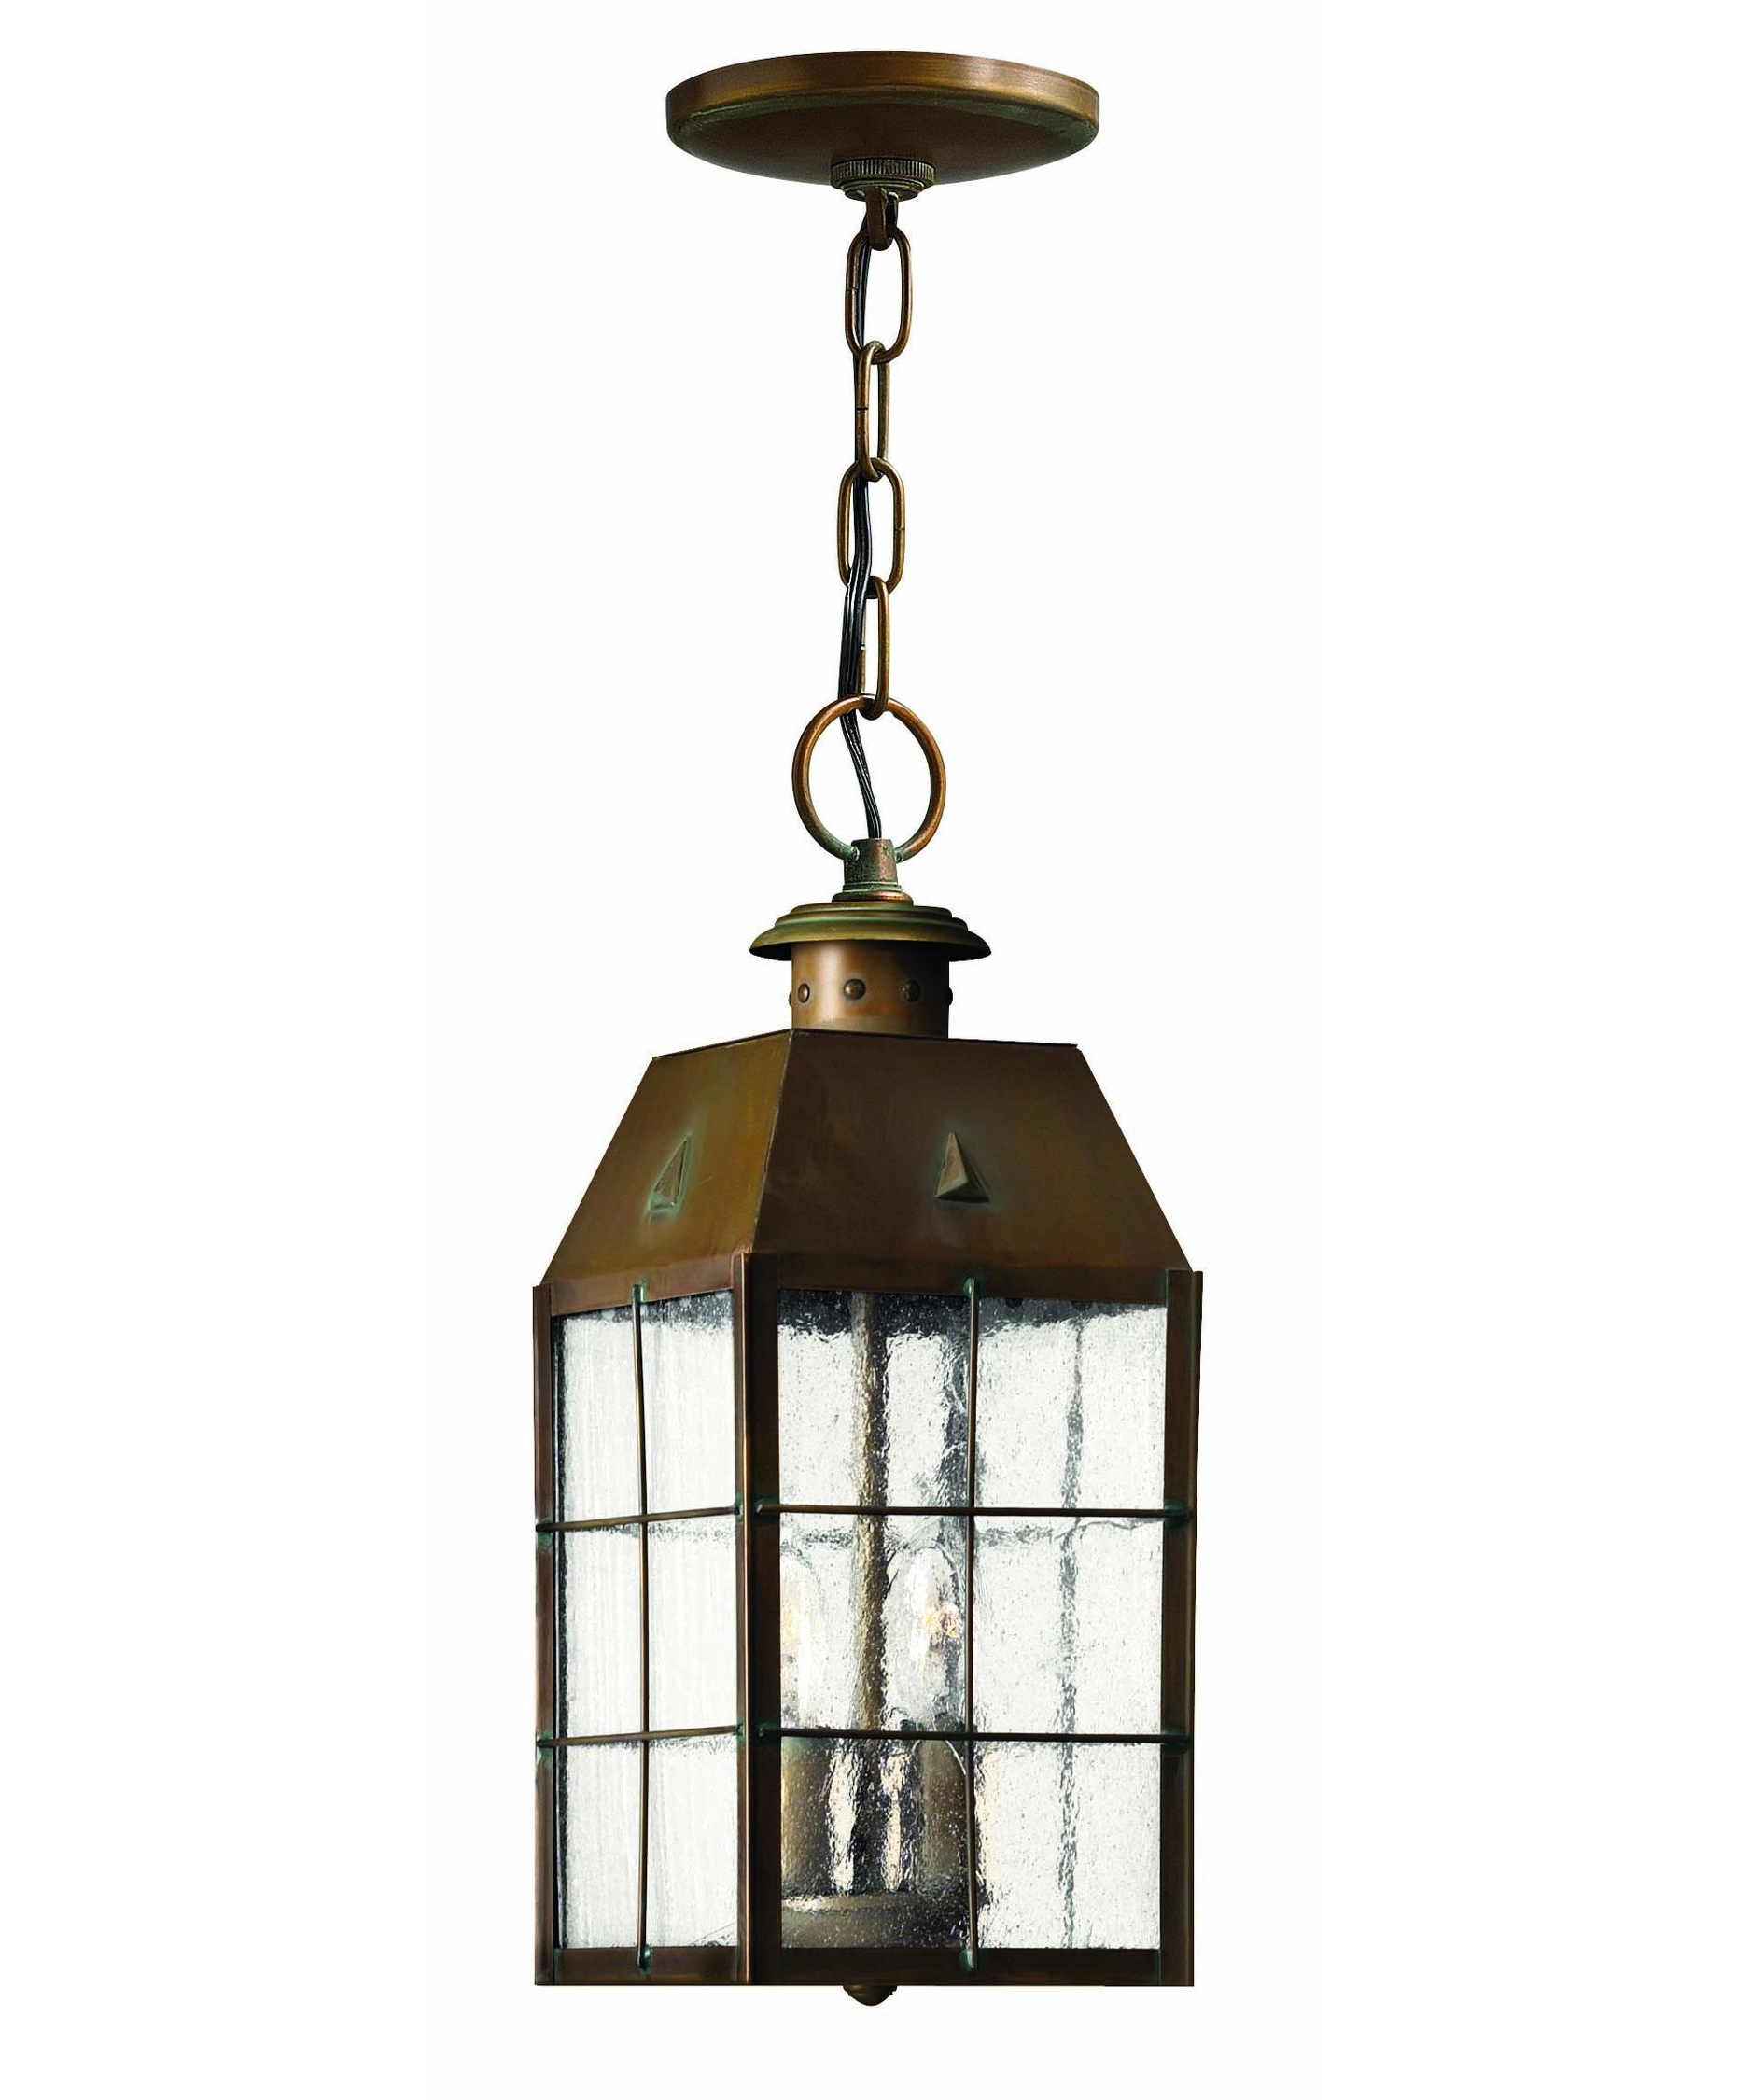 Hinkley Lighting 2372 Nantucket 6 Inch Wide 2 Light Outdoor Hanging Intended For Well Known Modern Latern Hinkley Lighting (View 9 of 20)